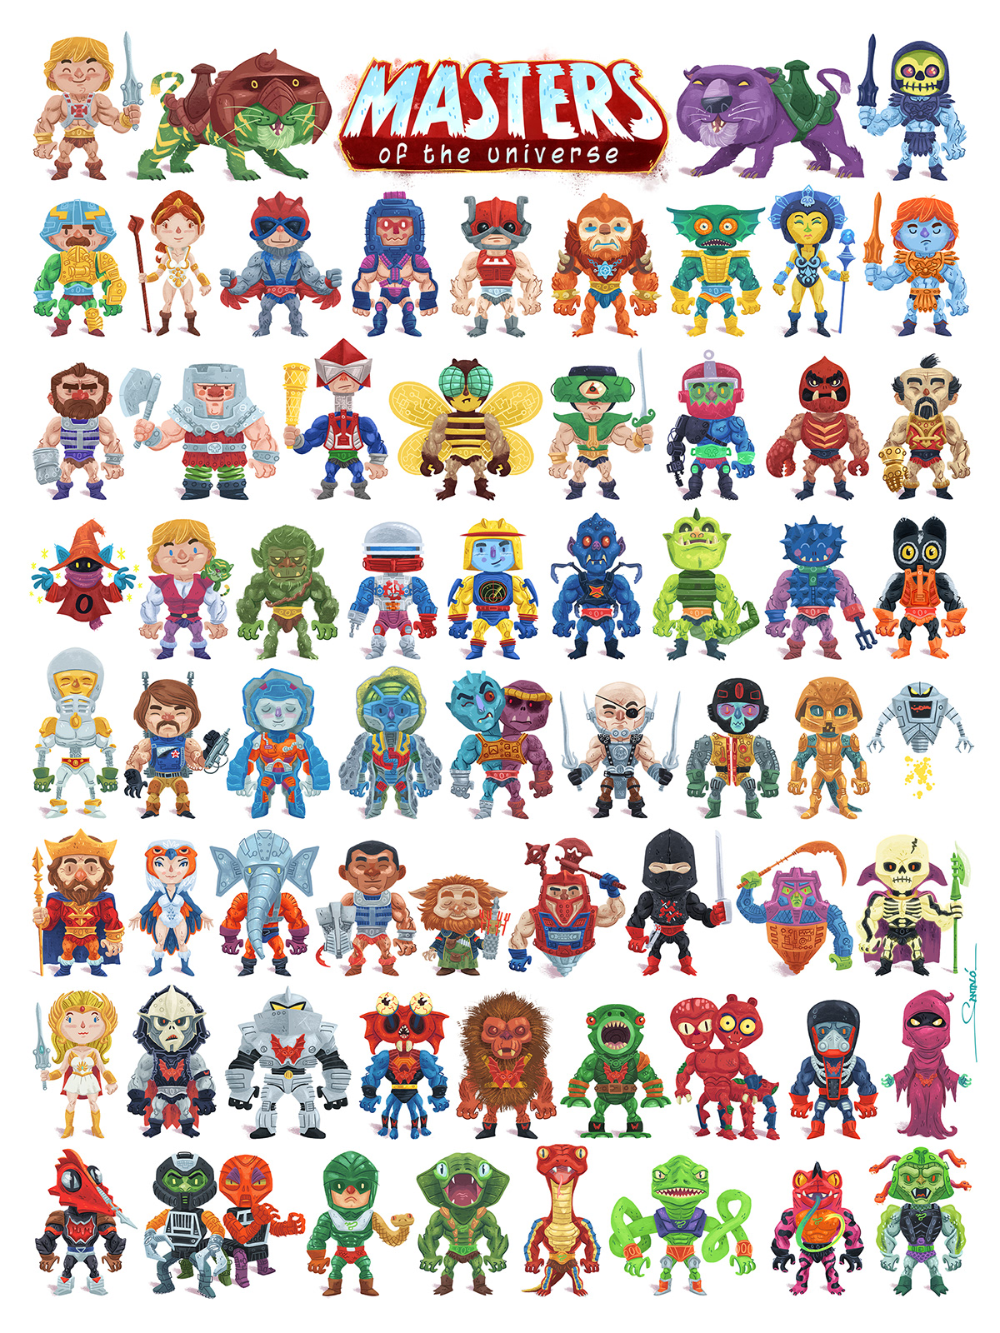 Heman Mastersoftheuniverse Projects Photos Videos Logos Illustrations And Branding On Behance Masters Of The Universe Project Photo Artwork